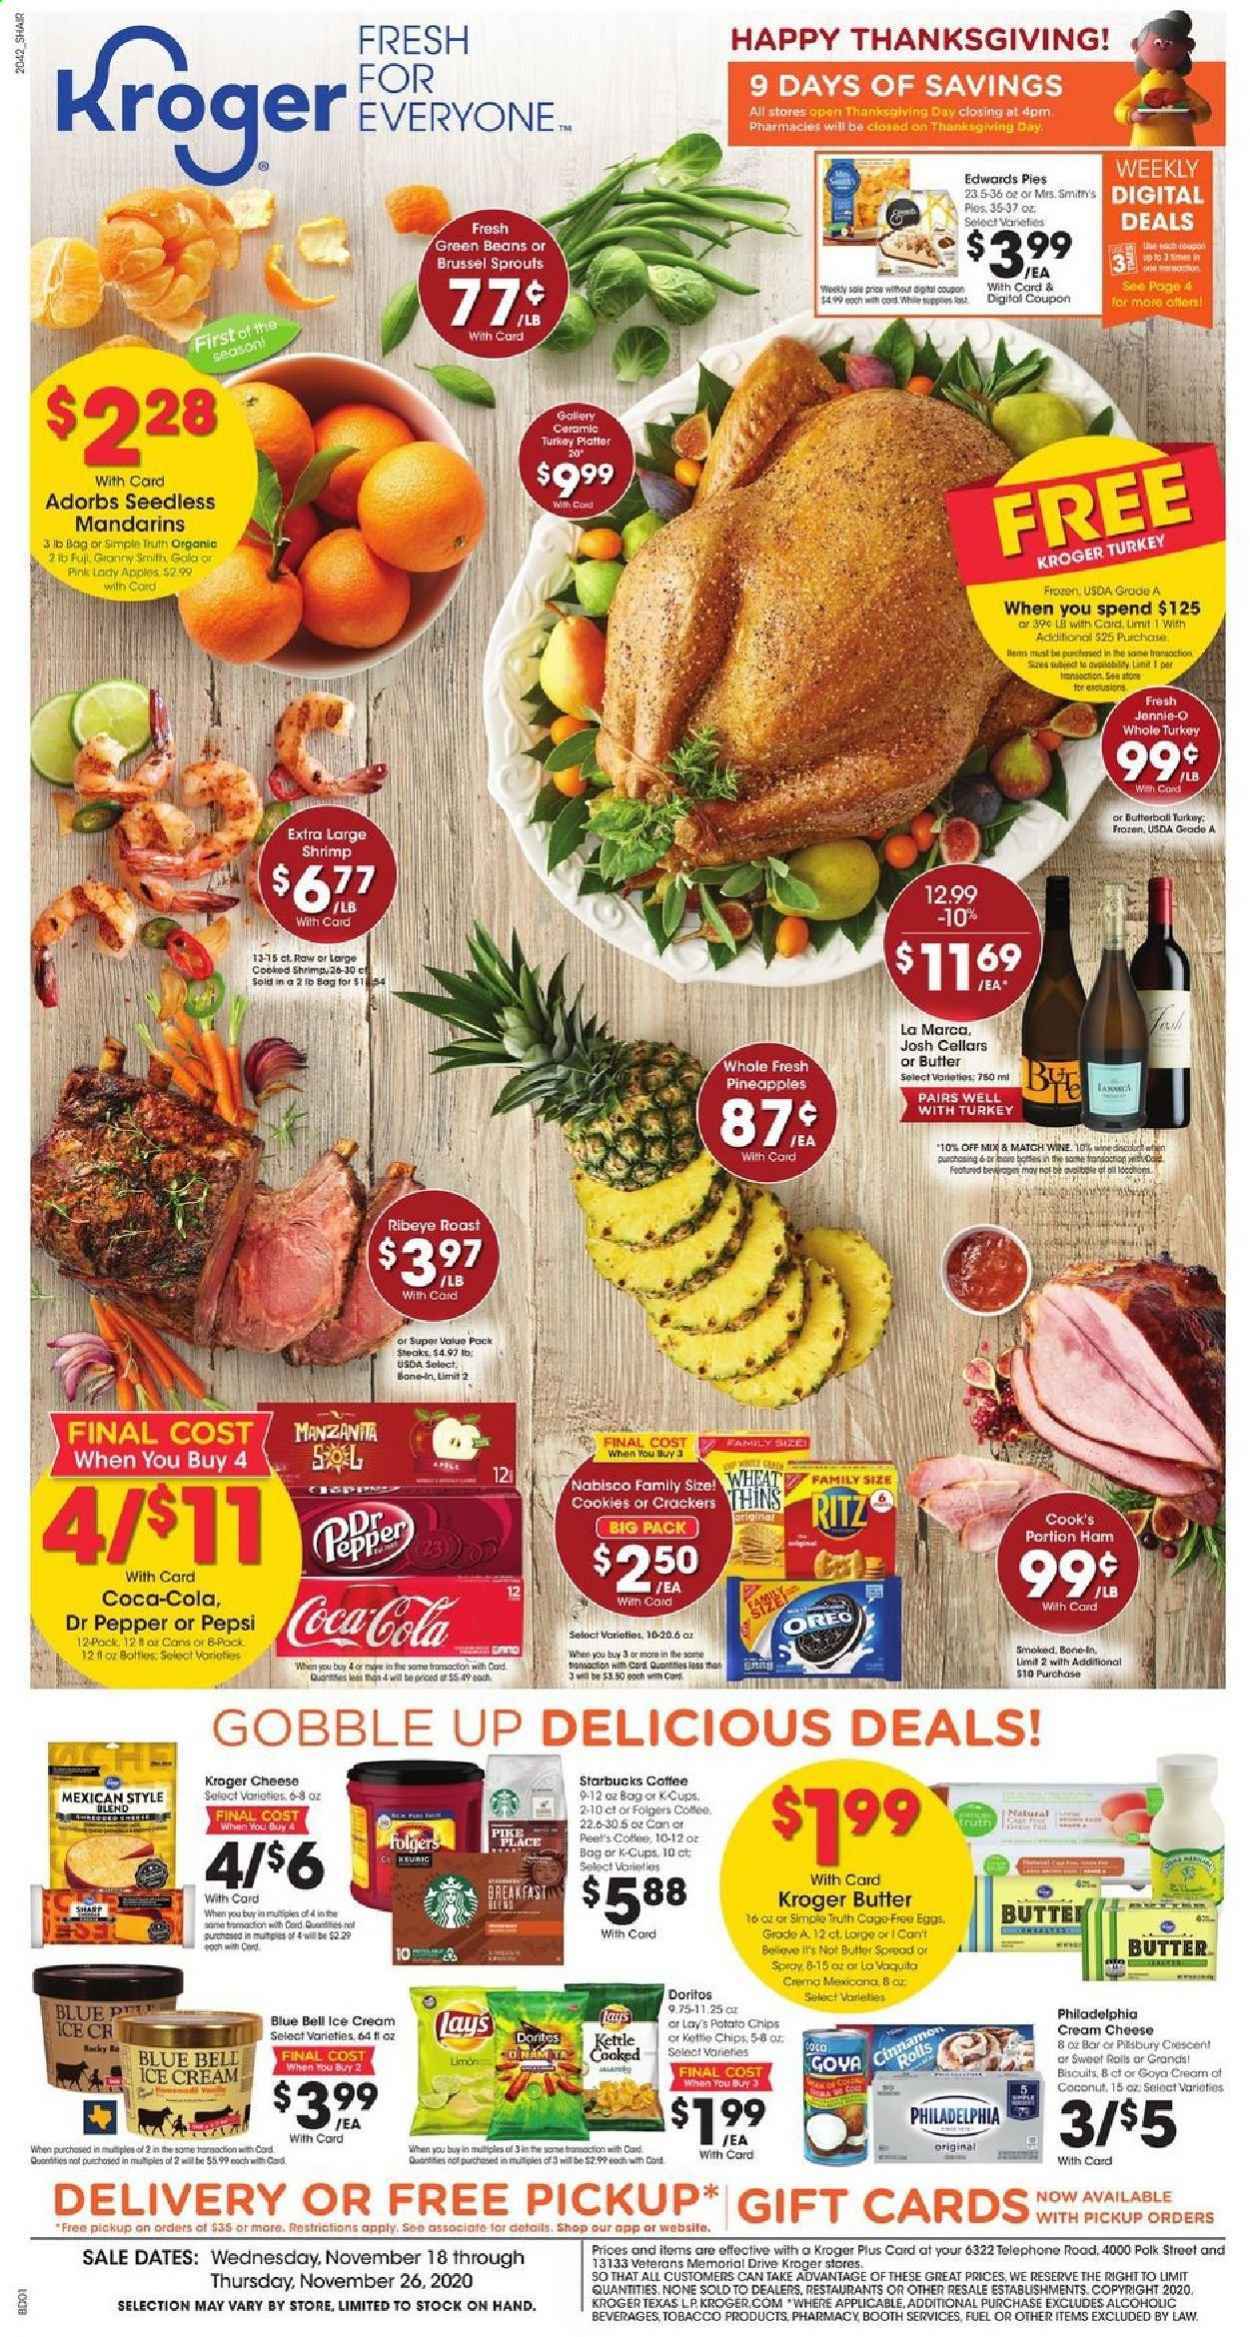 Kroger Flyer - 11.18.2020 - 11.26.2020 - Sales products - apples, beans, biscuits, butter, Coca-Cola, coffee, cookies, cream cheese, Doritos, eggs, frozen, fuel, green beans, Sharp, starbucks, turkey, whole turkey, ham, ice cream, philadelphia, pike, pineapple, potato chips, Pepsi, Oreo, chips, cheese, coconut, pepper, Lay's, wine, platter, Folgers, Apple, shrimps, kettle, pineapples. Page 1.